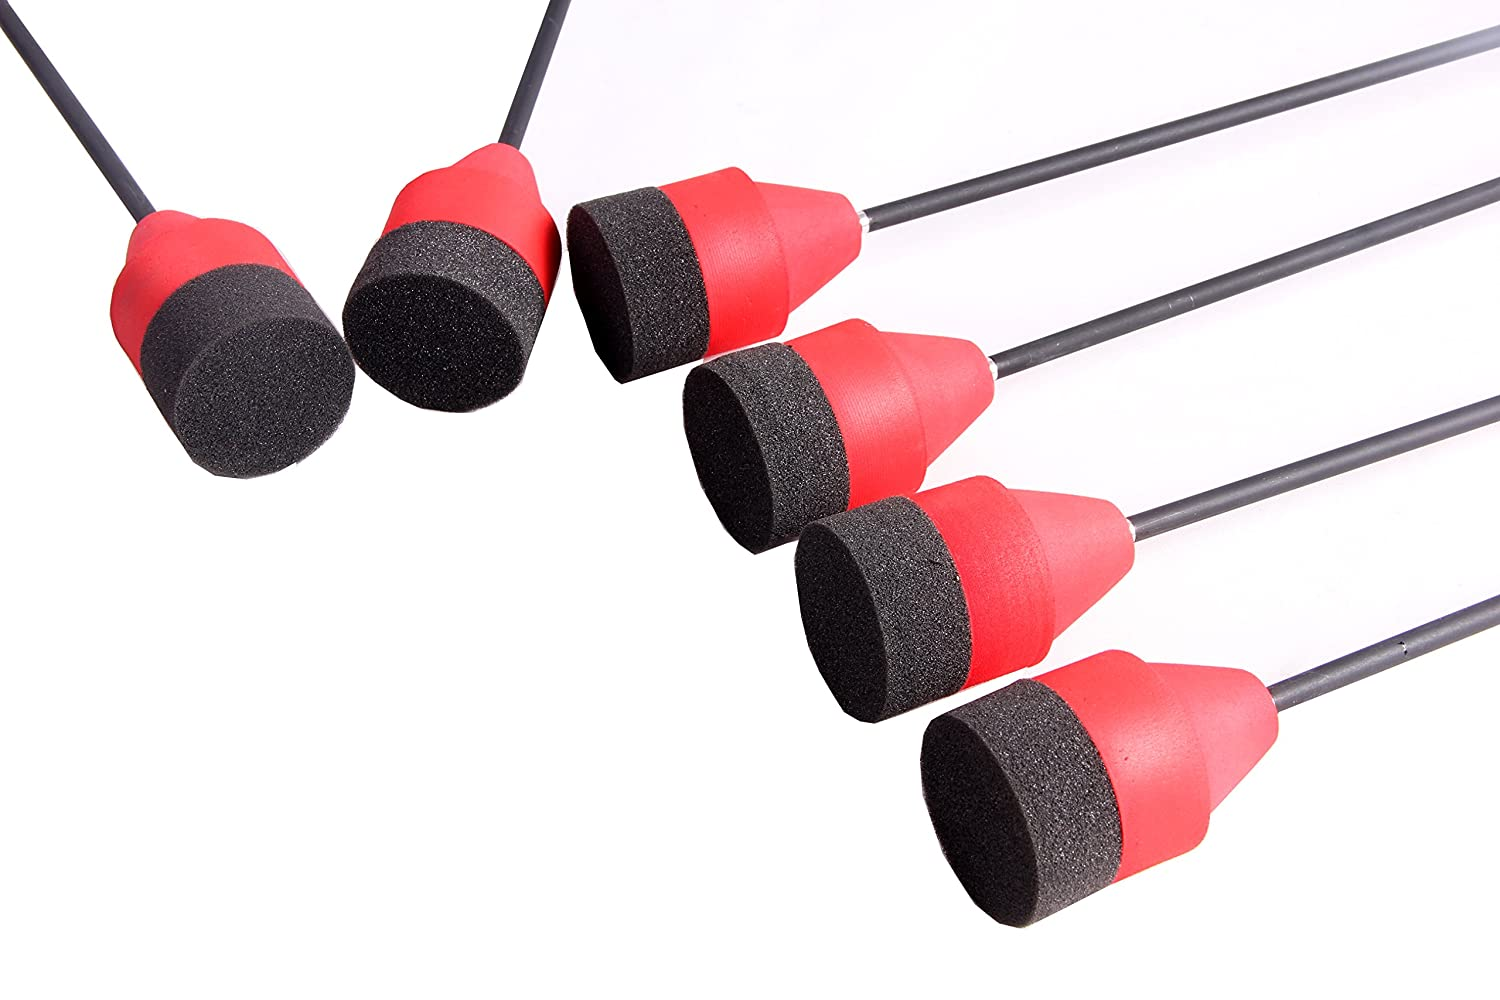 PG1ARCHERY Carbon Larp Arrows Foam Tips Broadhead Feather Fletched with Replaceable Screw-in Field Points and Arrow Target for Archery Practice CS Game